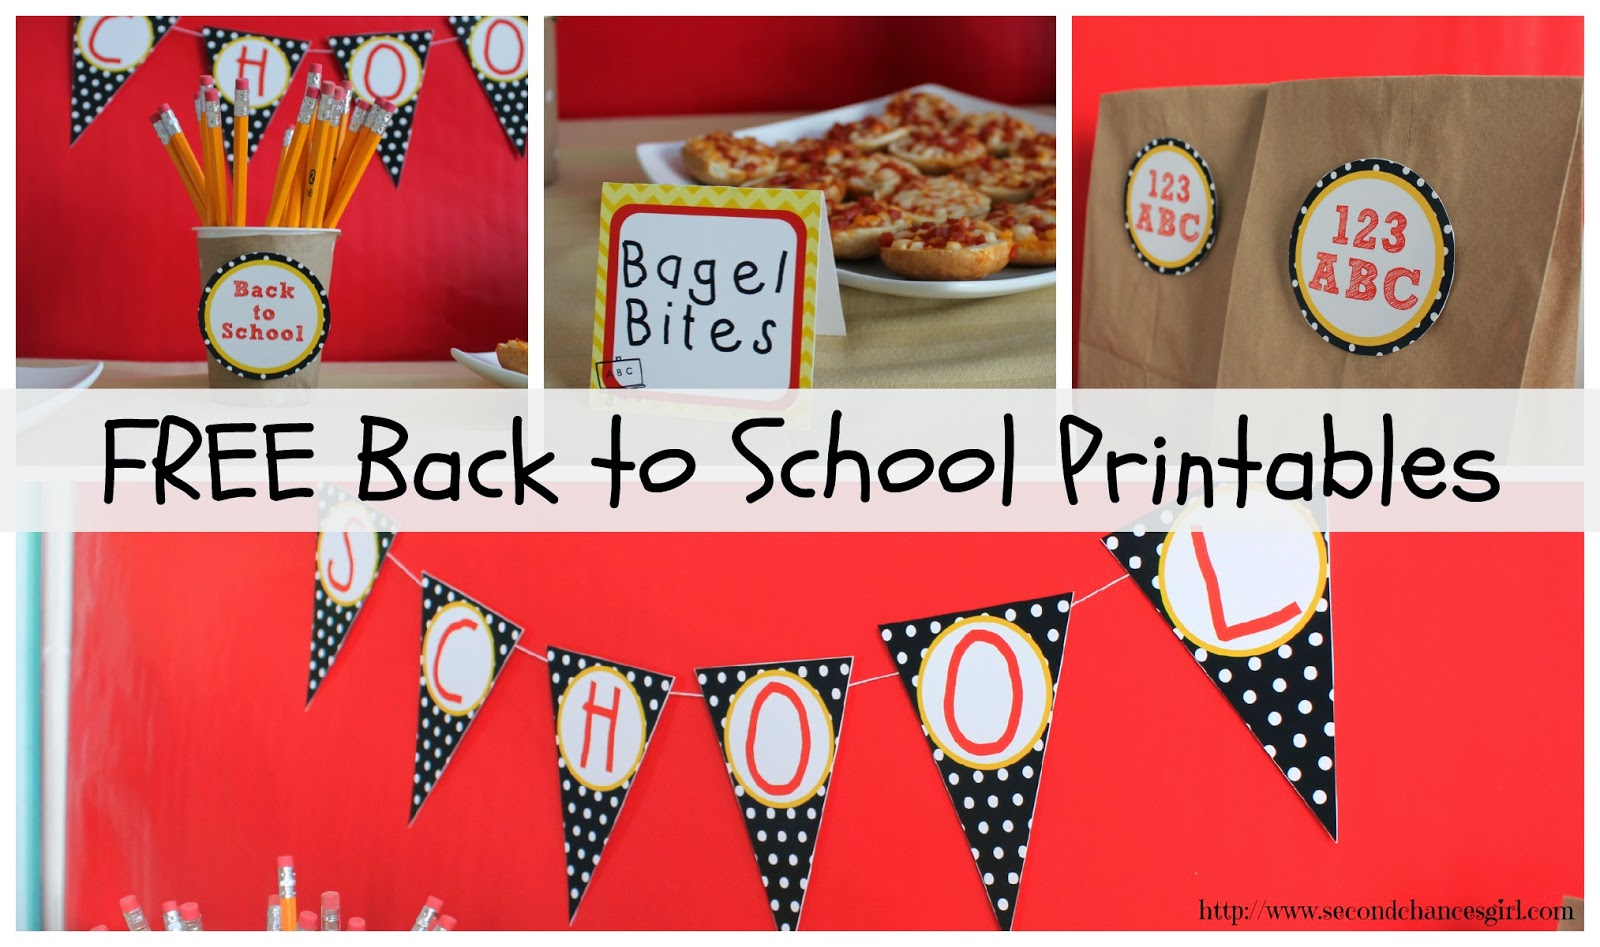 FREE Back to School Printables #AfterSchoolSnacks #shop